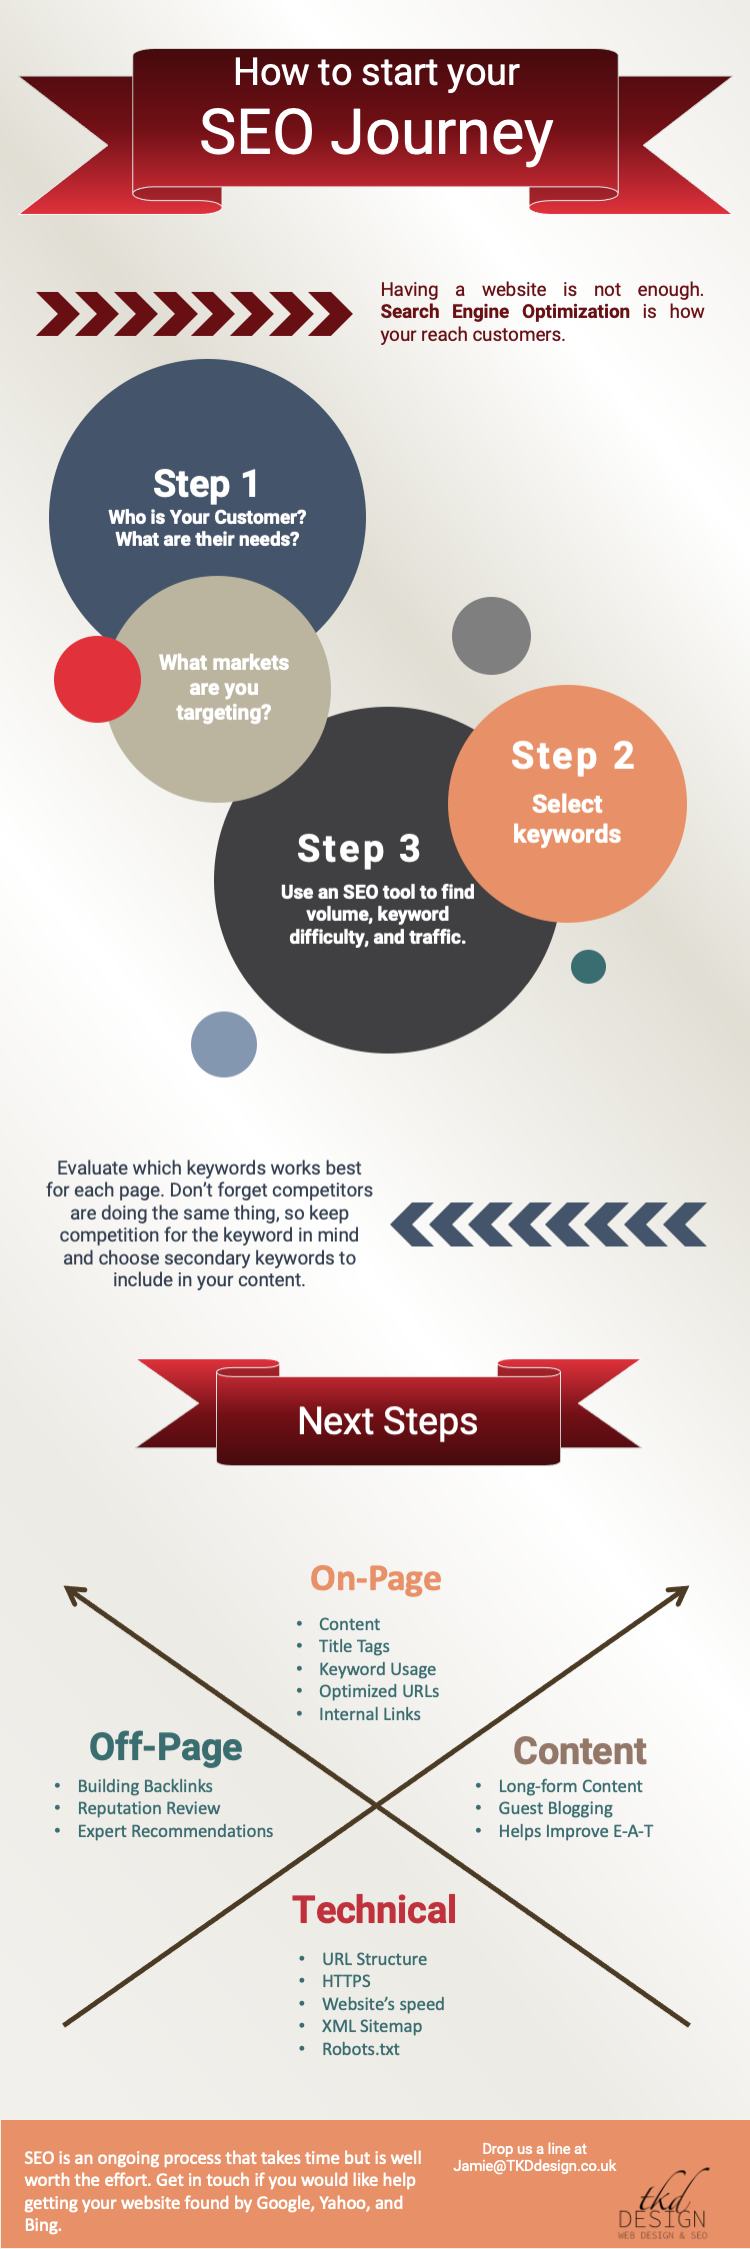 How to Start Your SEO Journey